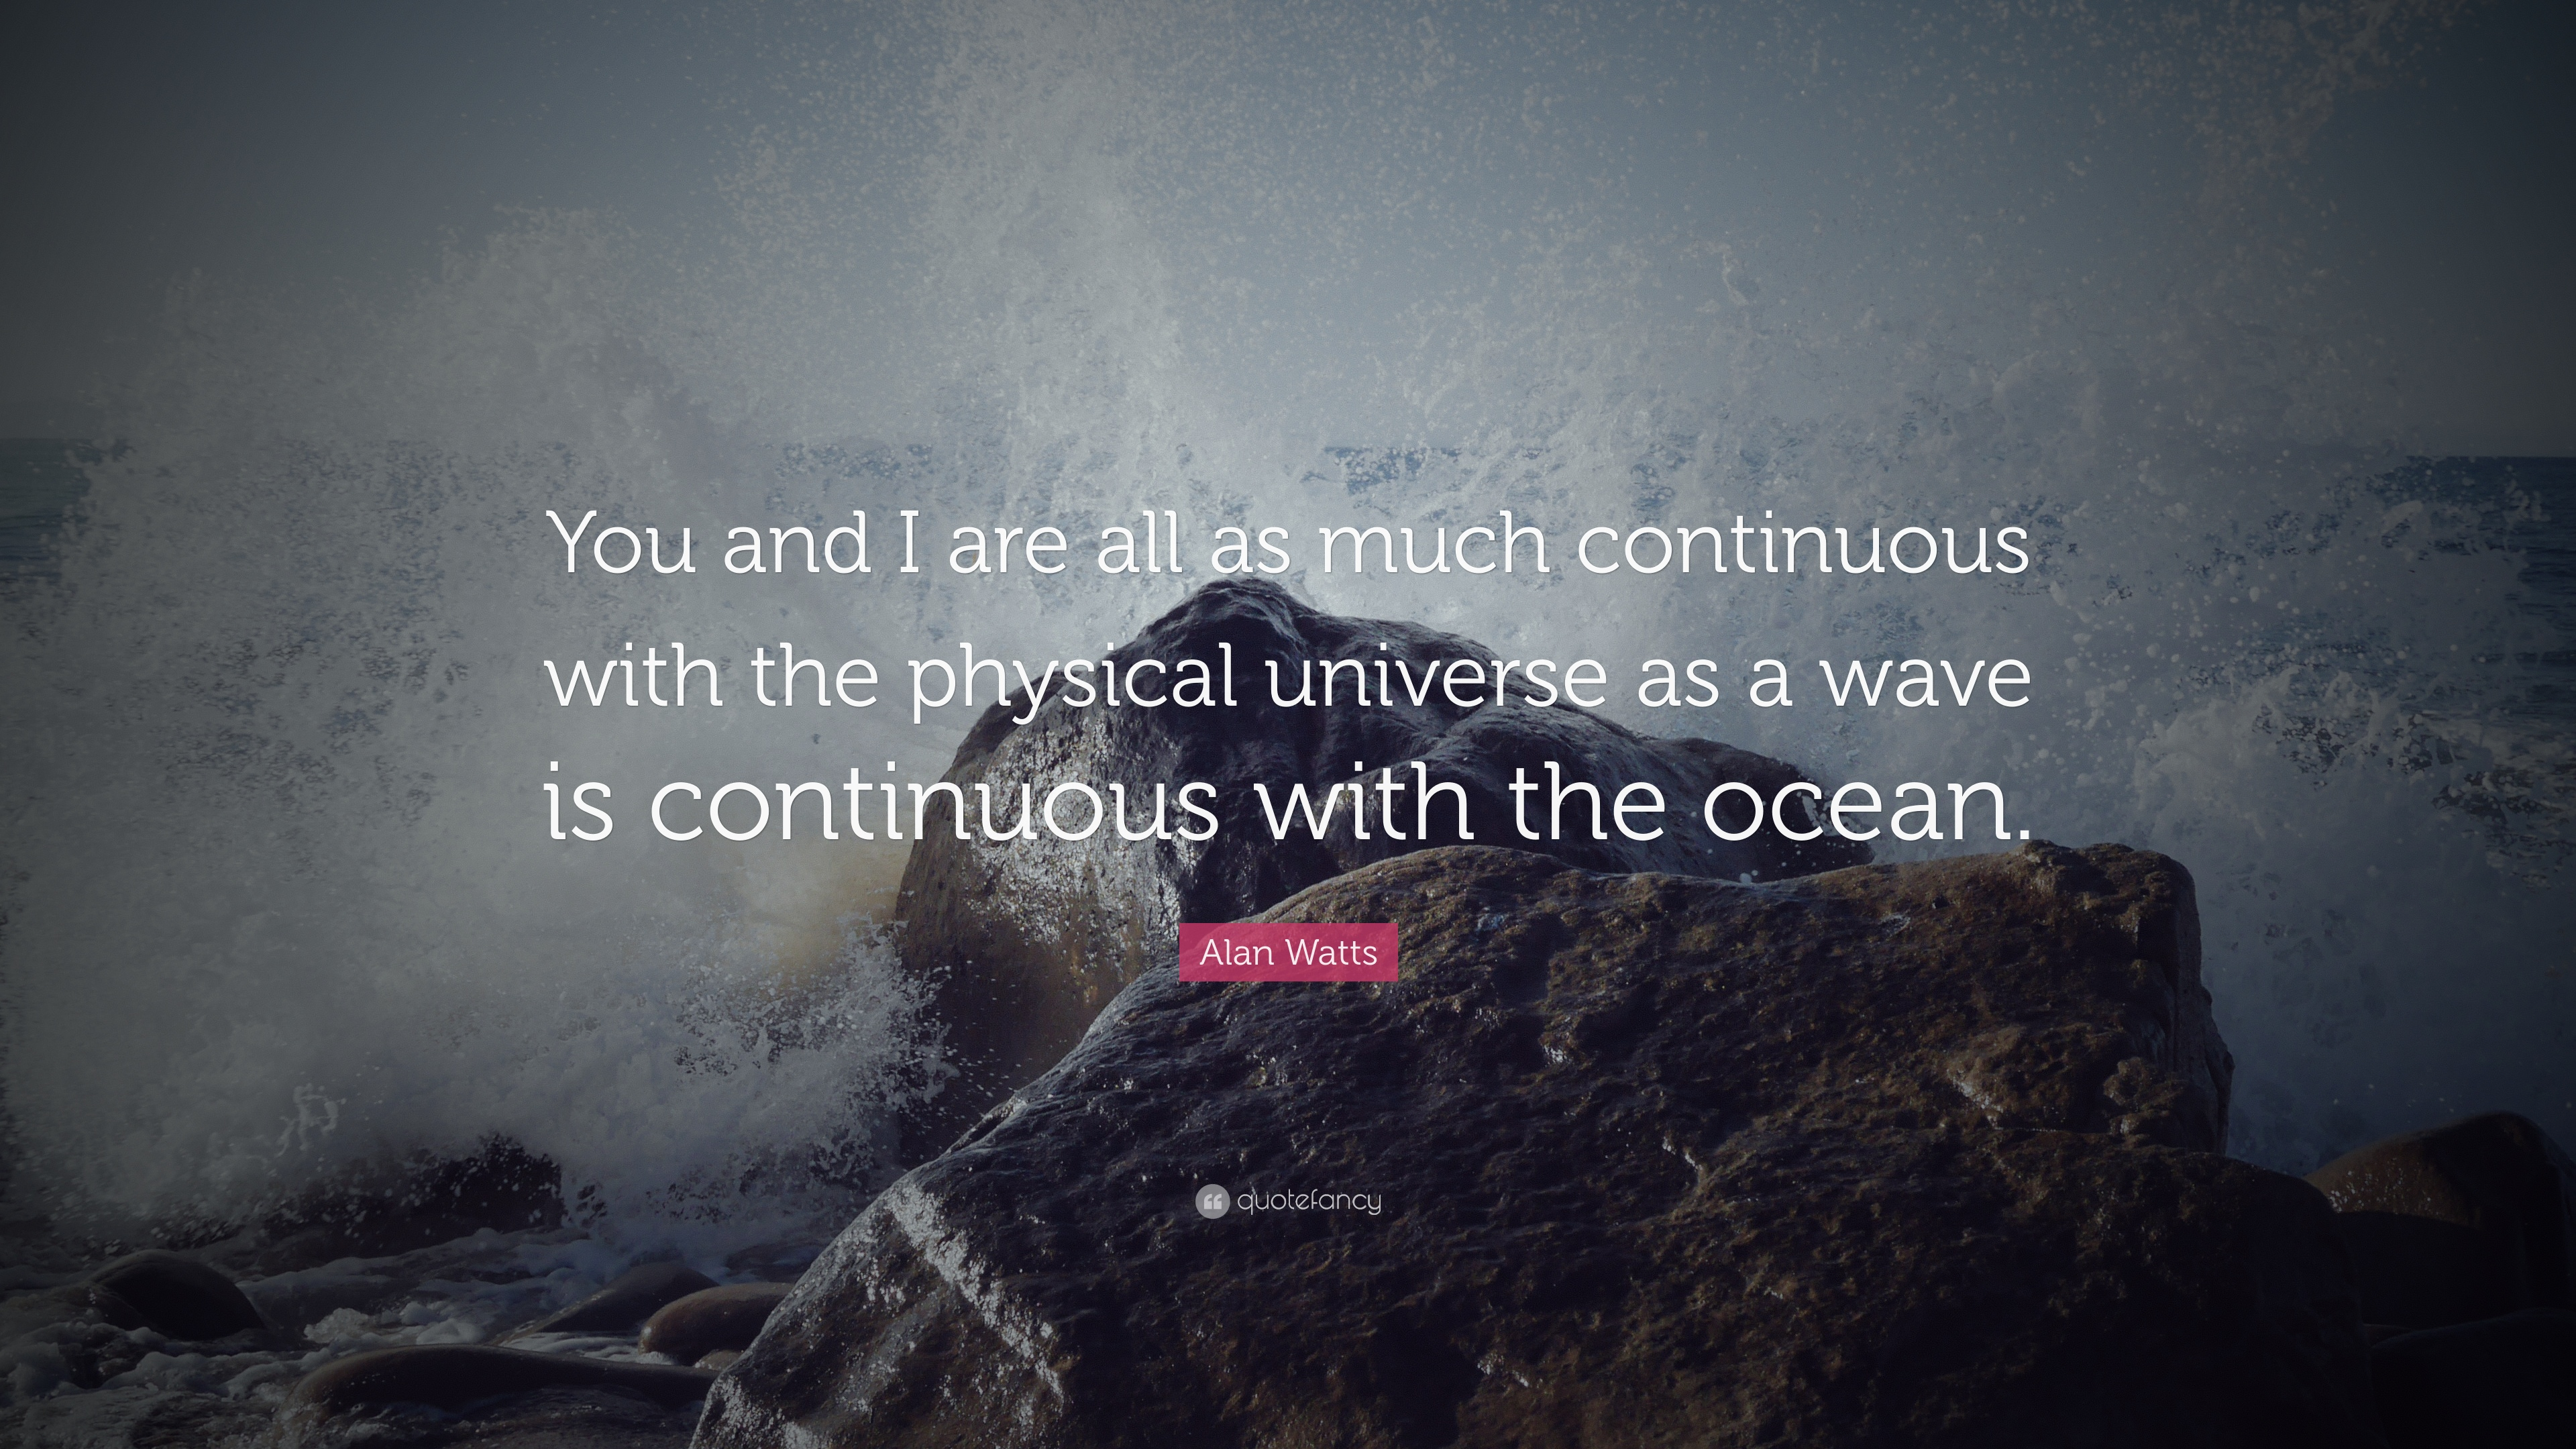 Quotes About Discovery Inspired By The Ocean: Alan Watts Quotes (57 Wallpapers)